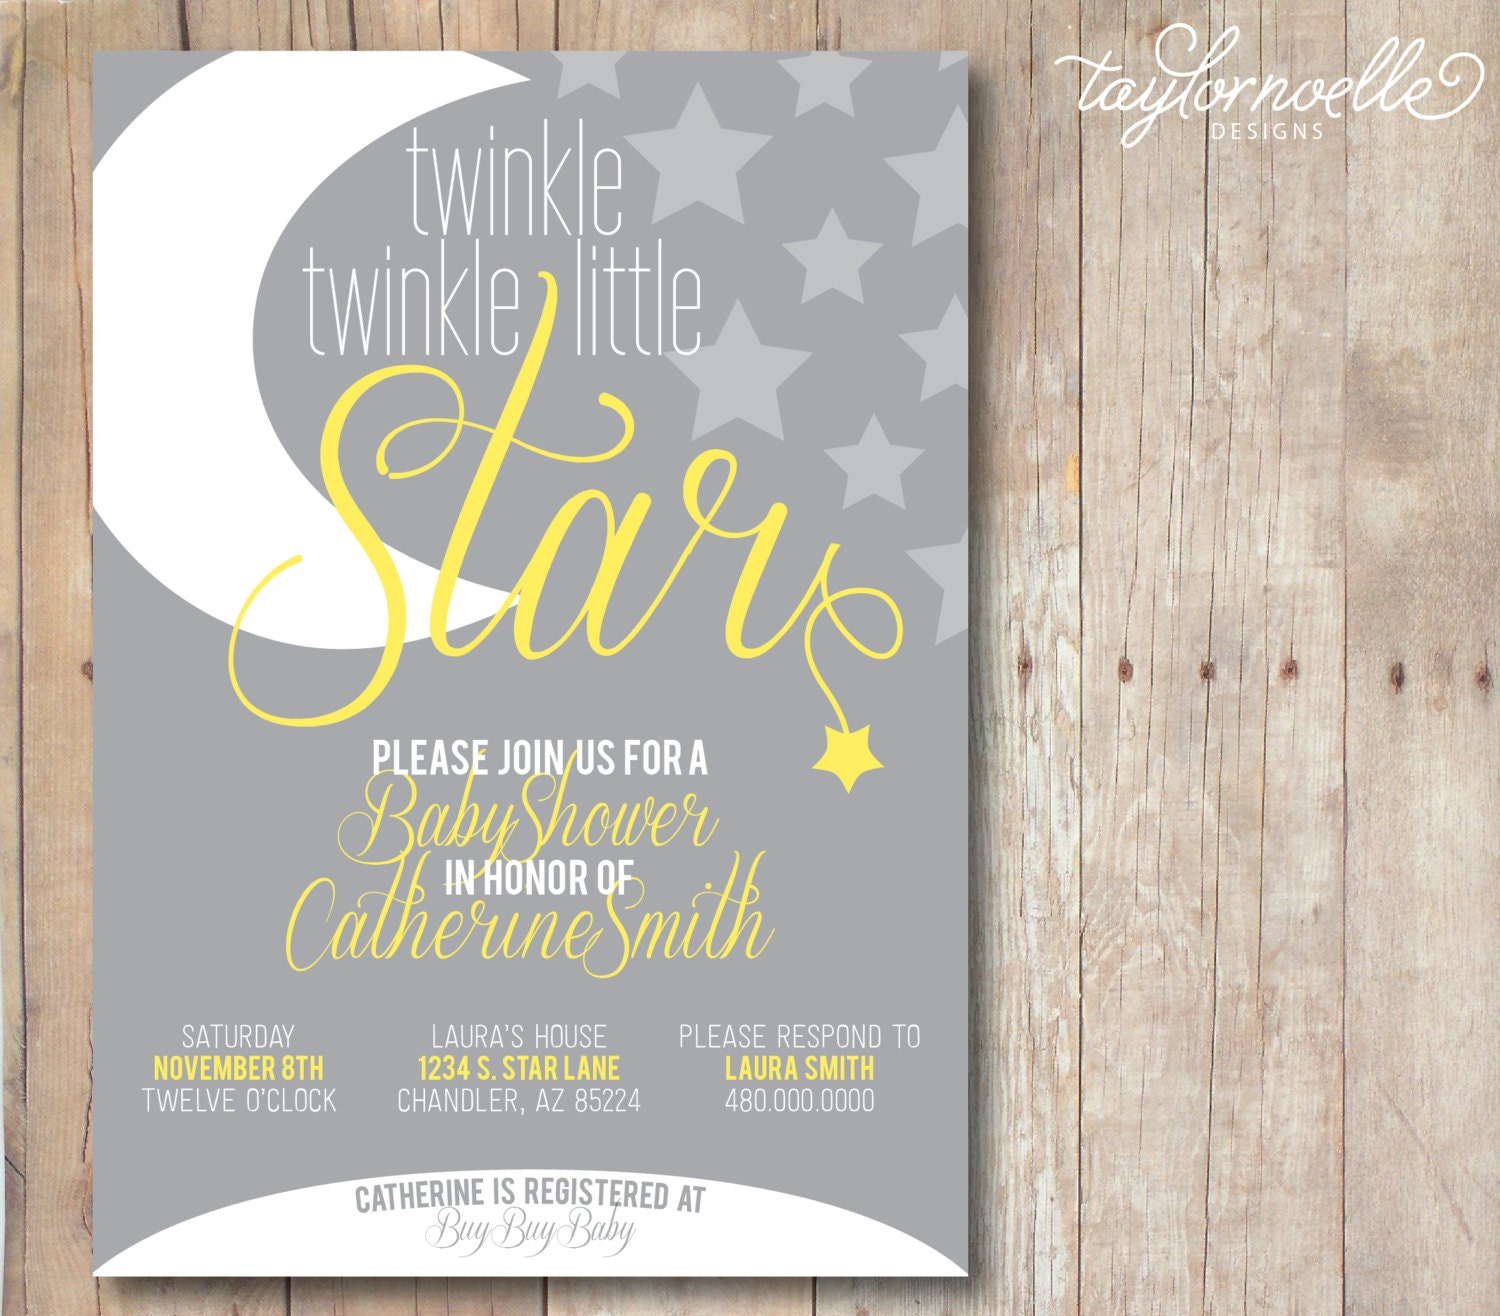 Twinkle Twinkle Little Star Baby Shower Invitation. Printable